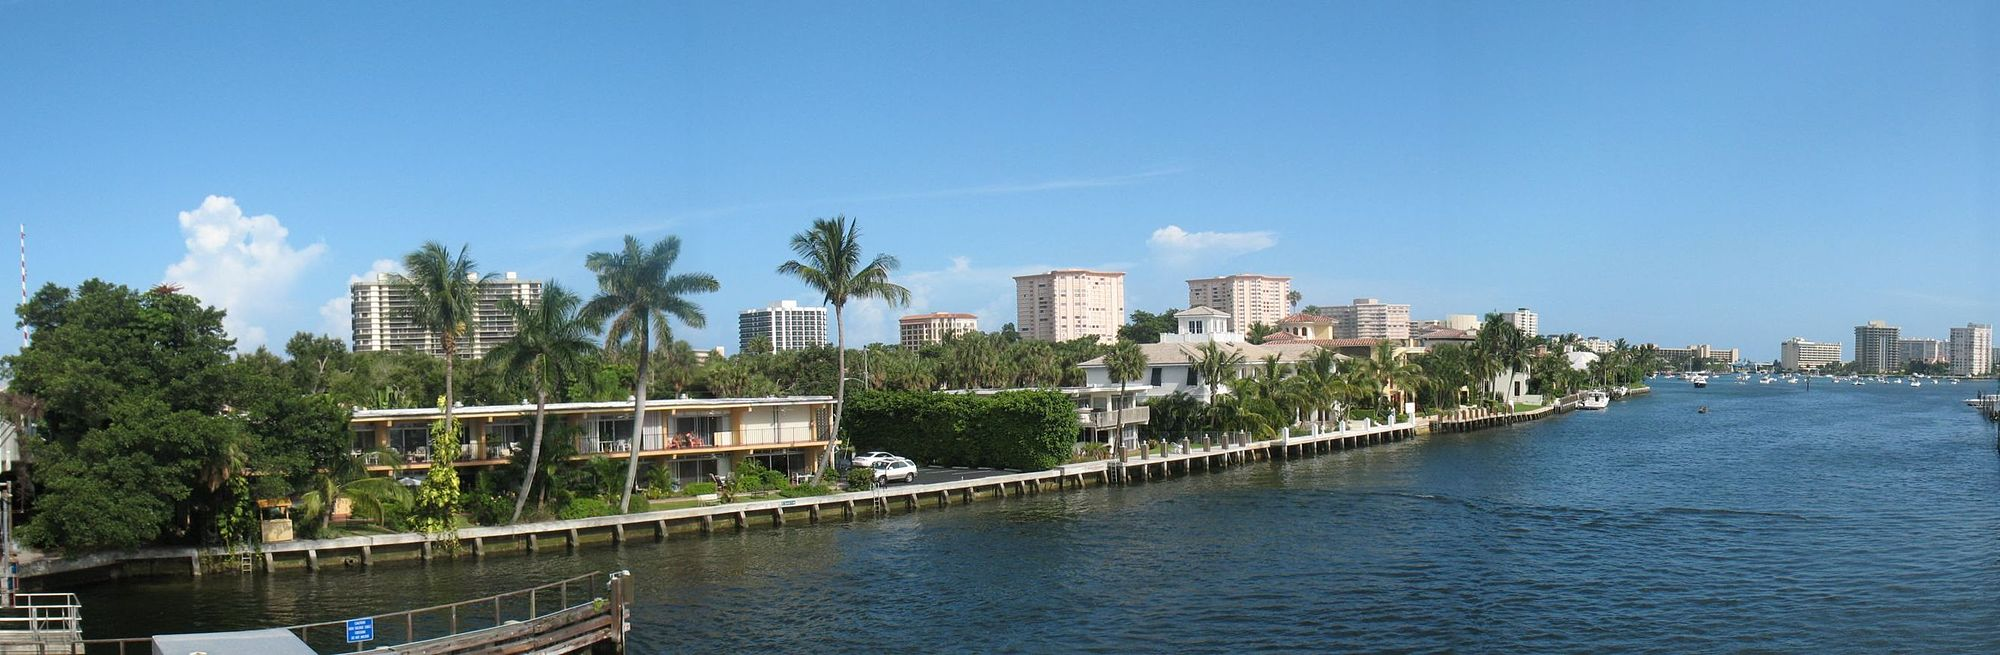 Colleges in boca raton area - Panoramic View Of A Portion Of The Intracoastal Waterway In Downtown Boca Raton